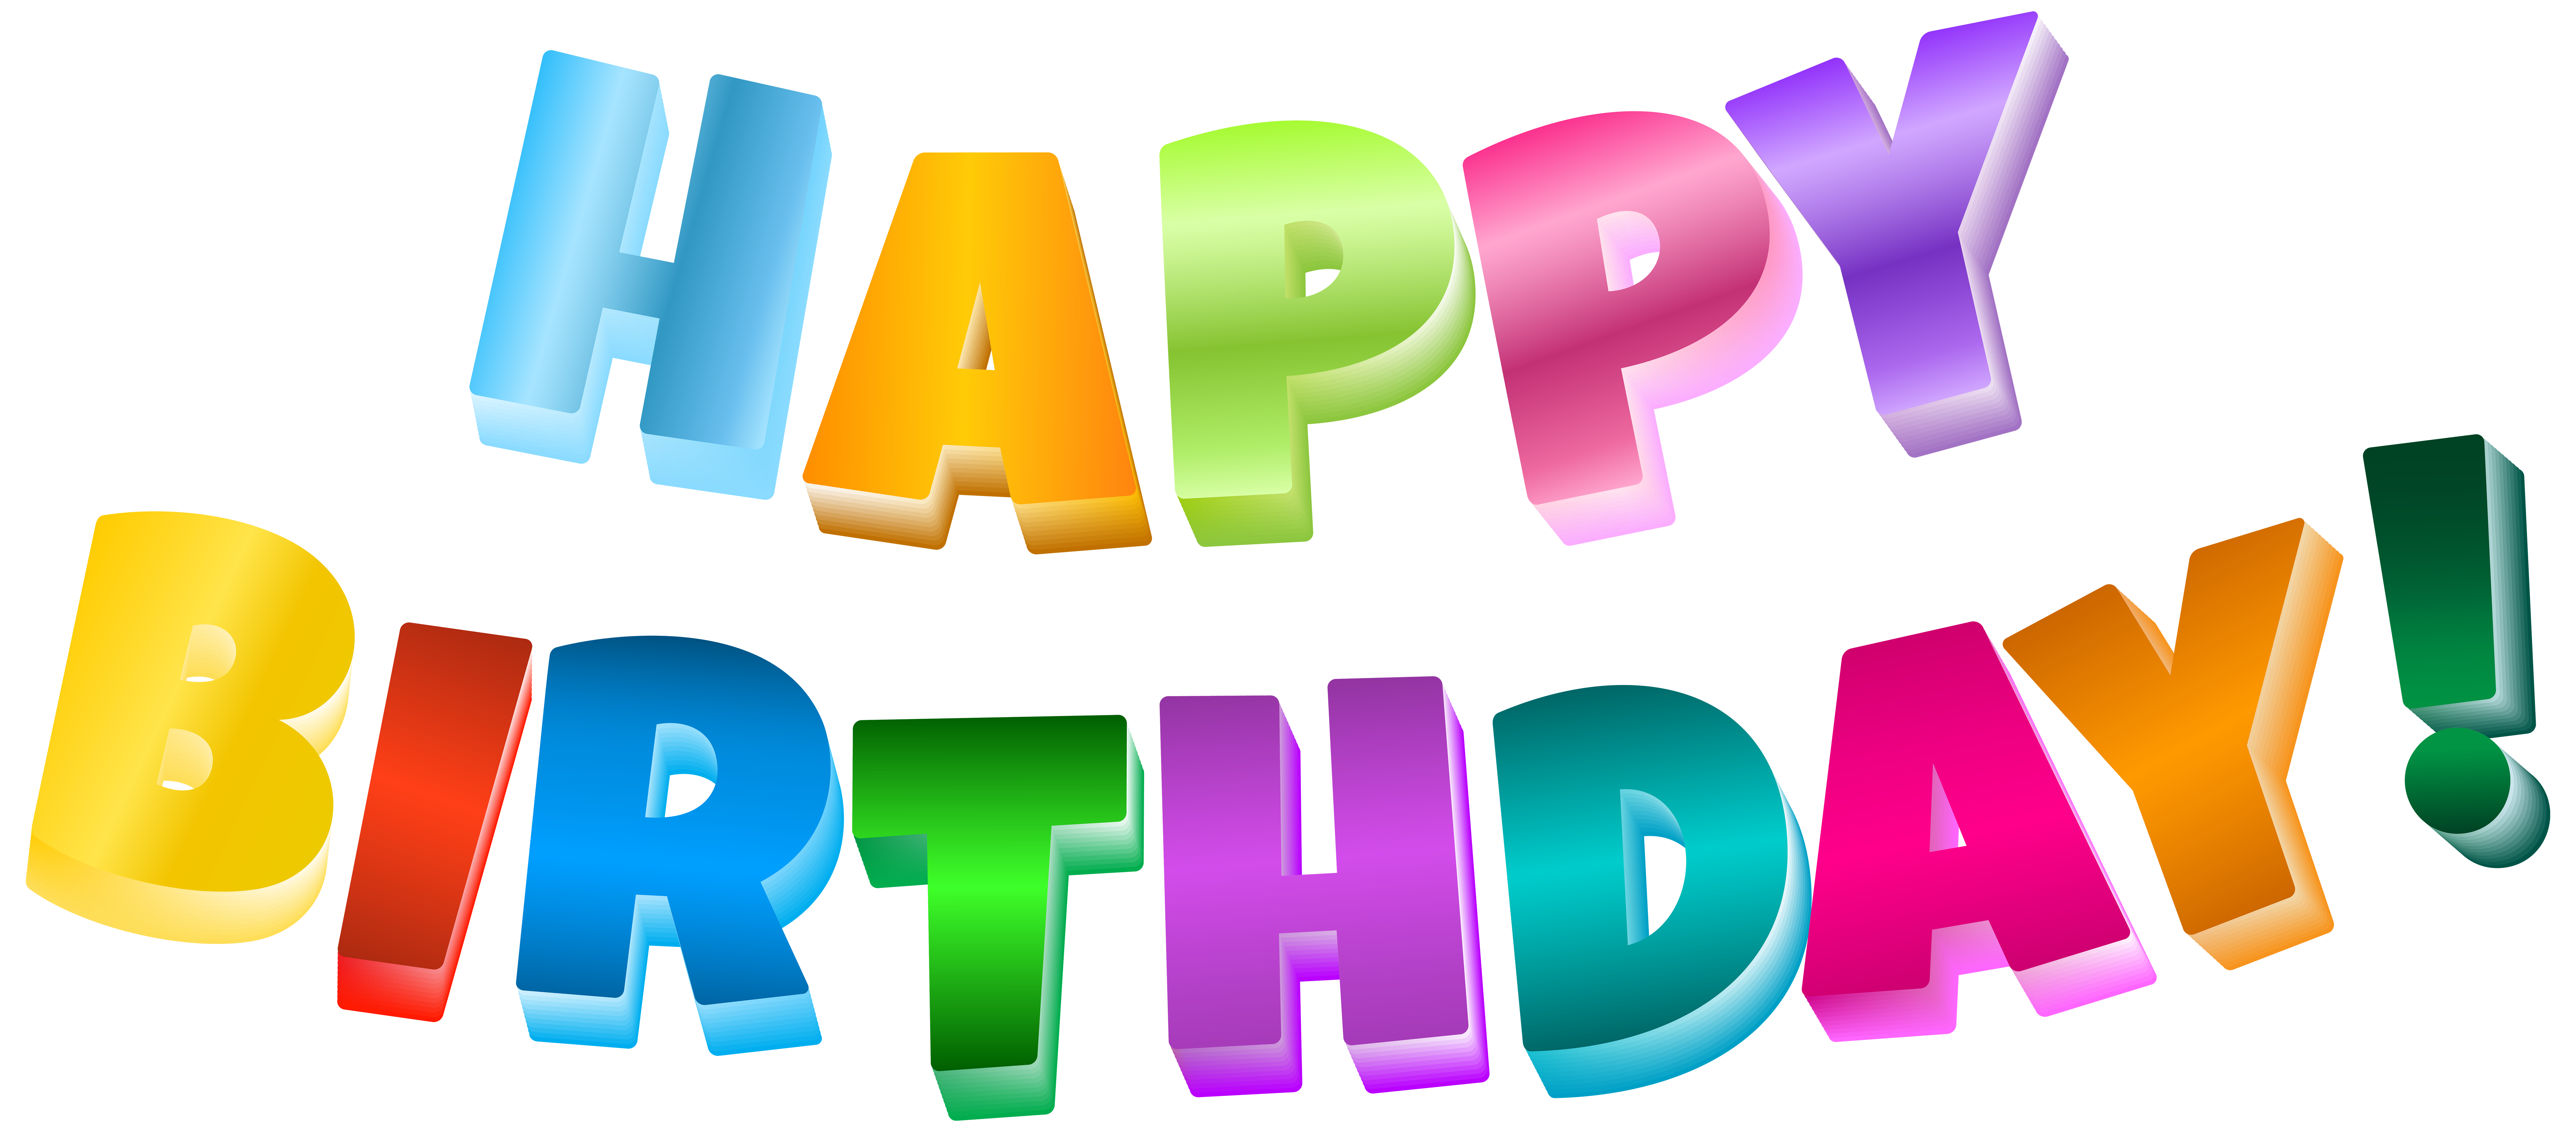 Birthday star clipart clipart royalty free library Multicolor Happy Birthday Transparent PNG Clip Art Image | Gallery ... clipart royalty free library